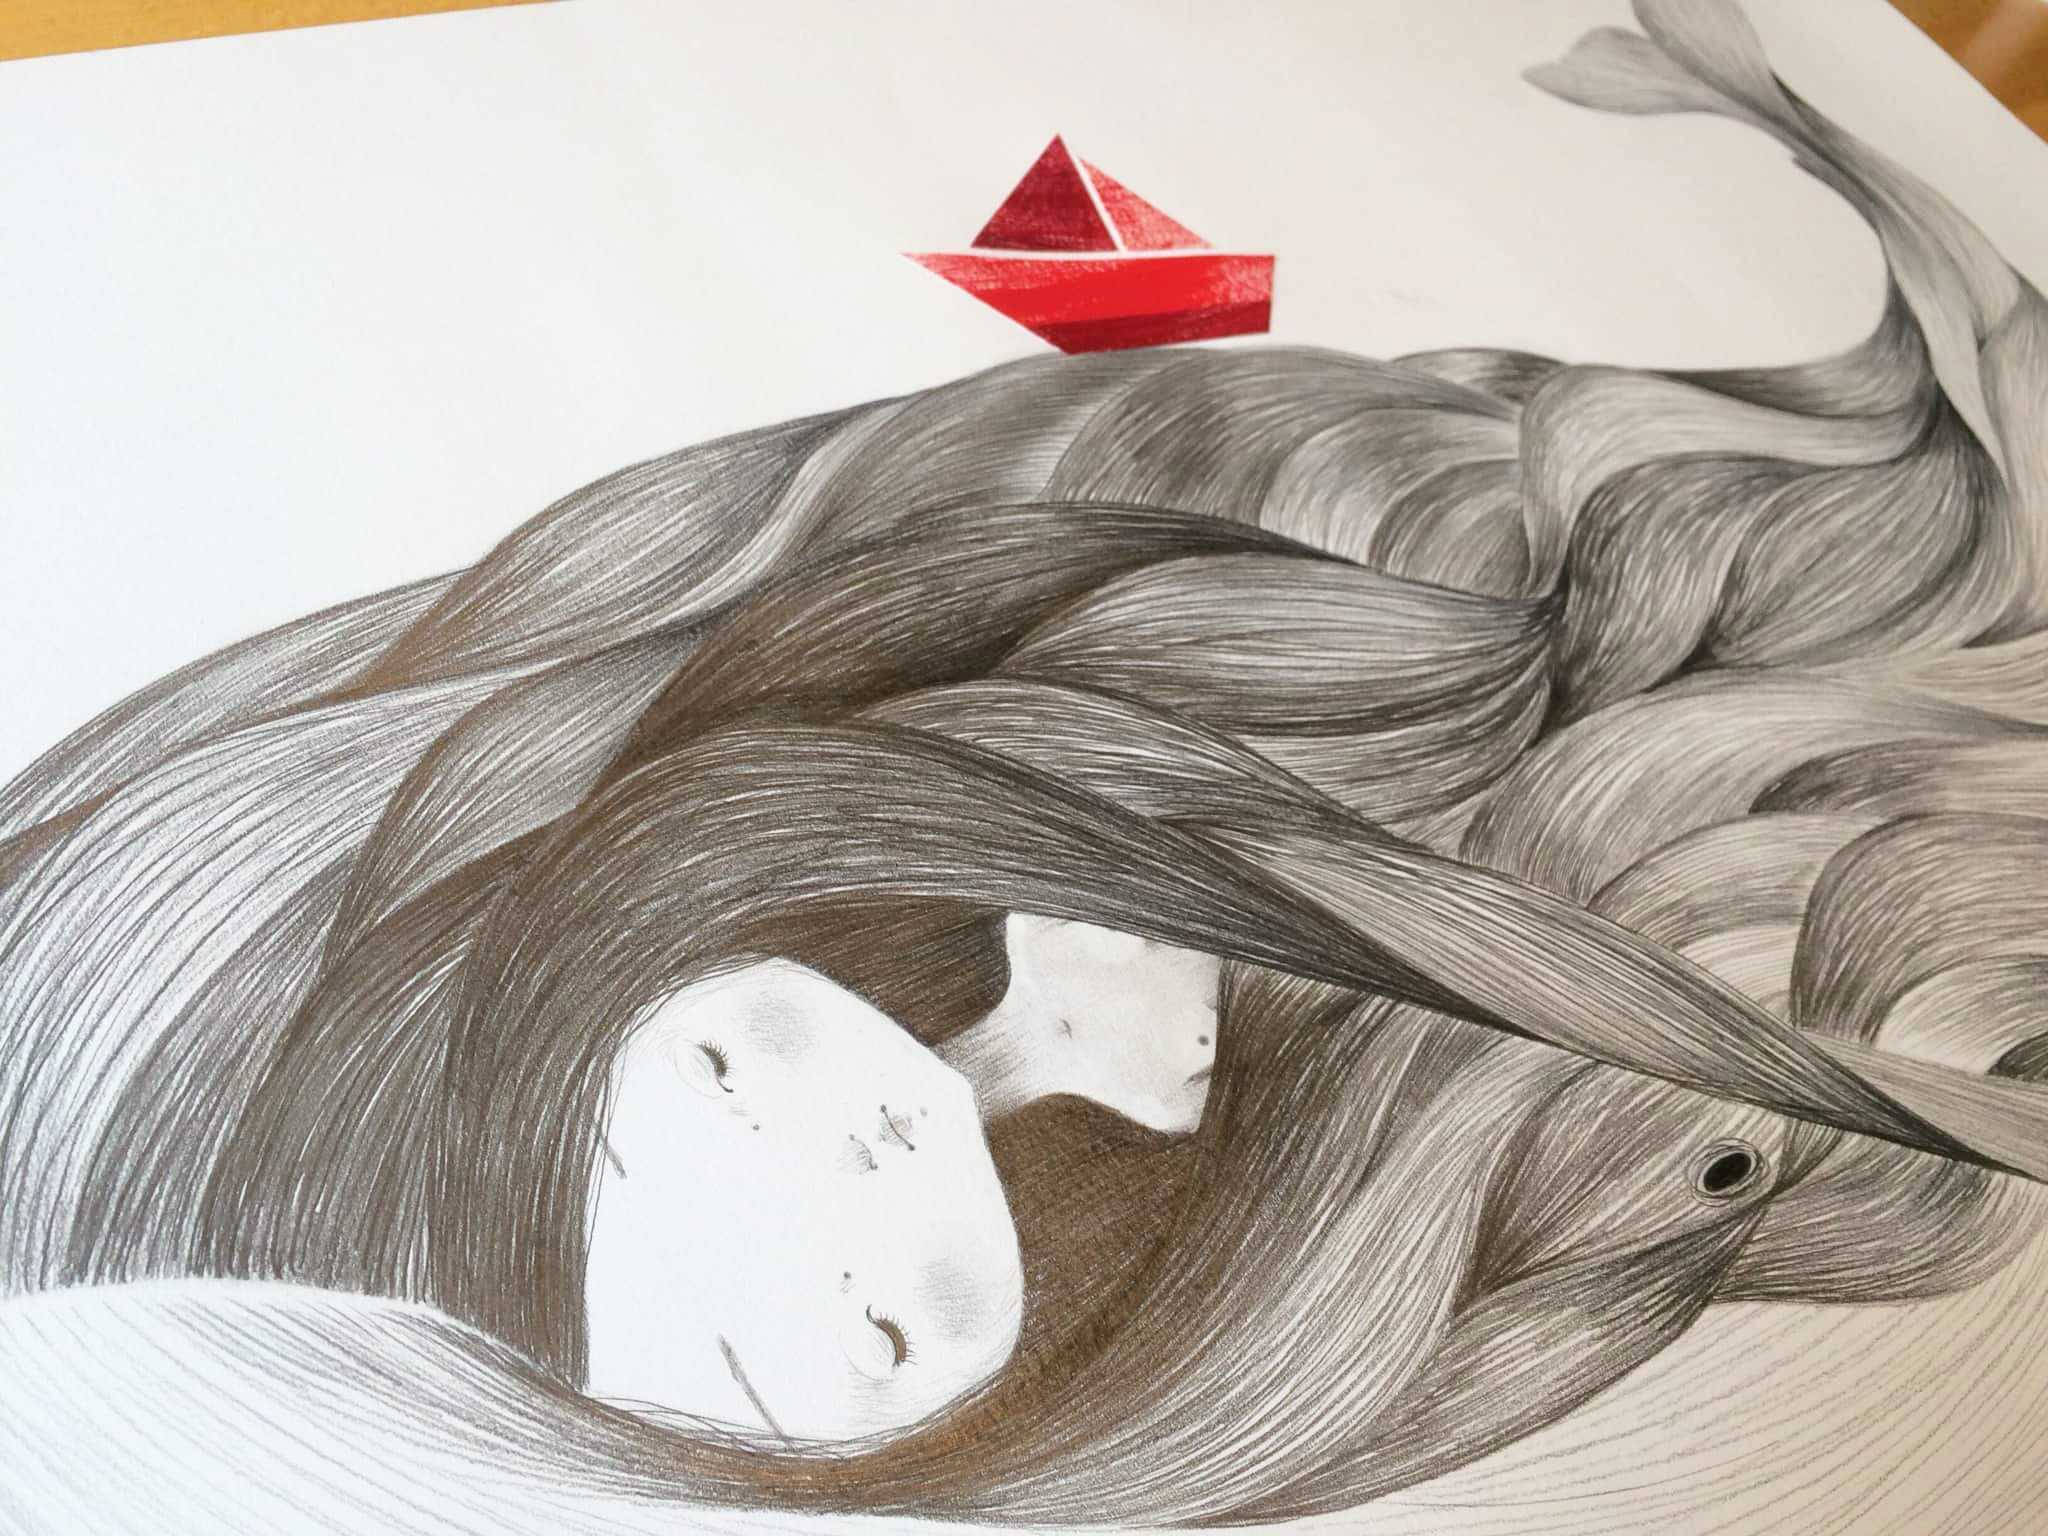 seforapons-graphite-collage-symbiosis-red-boat-whale-girl-kujirachan-2